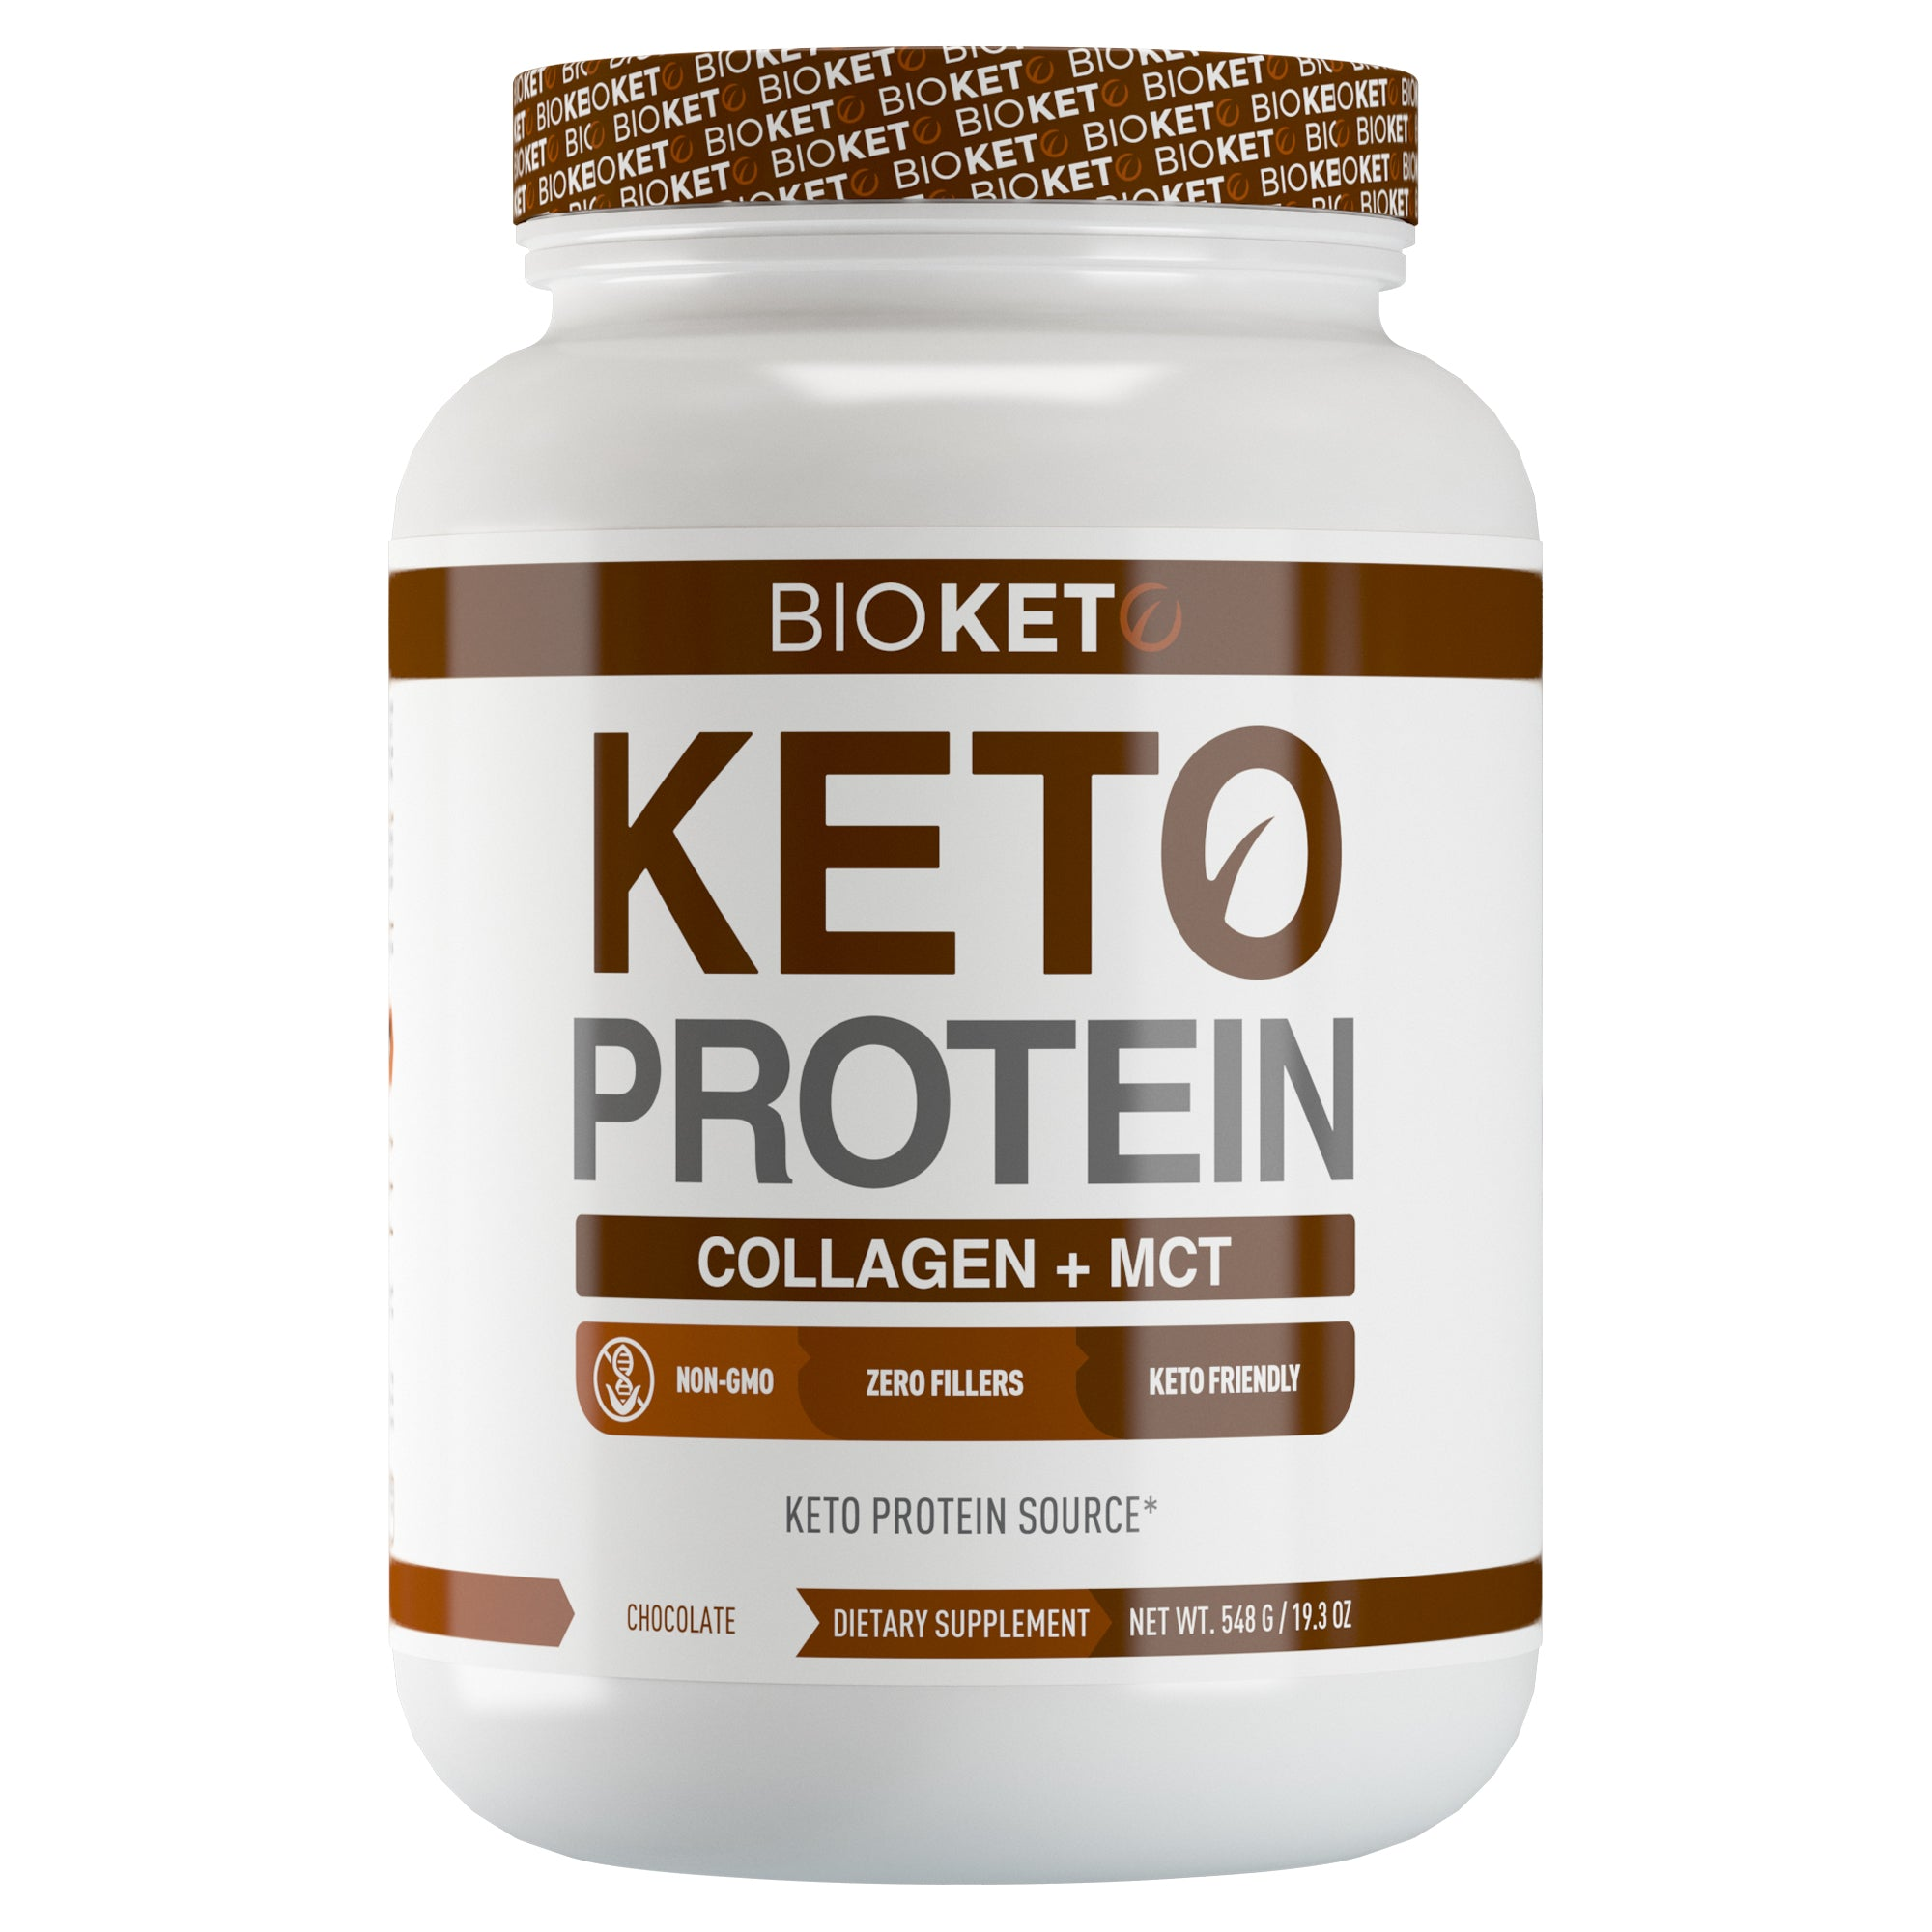 Keto Protein - Collagen + MCT Powder